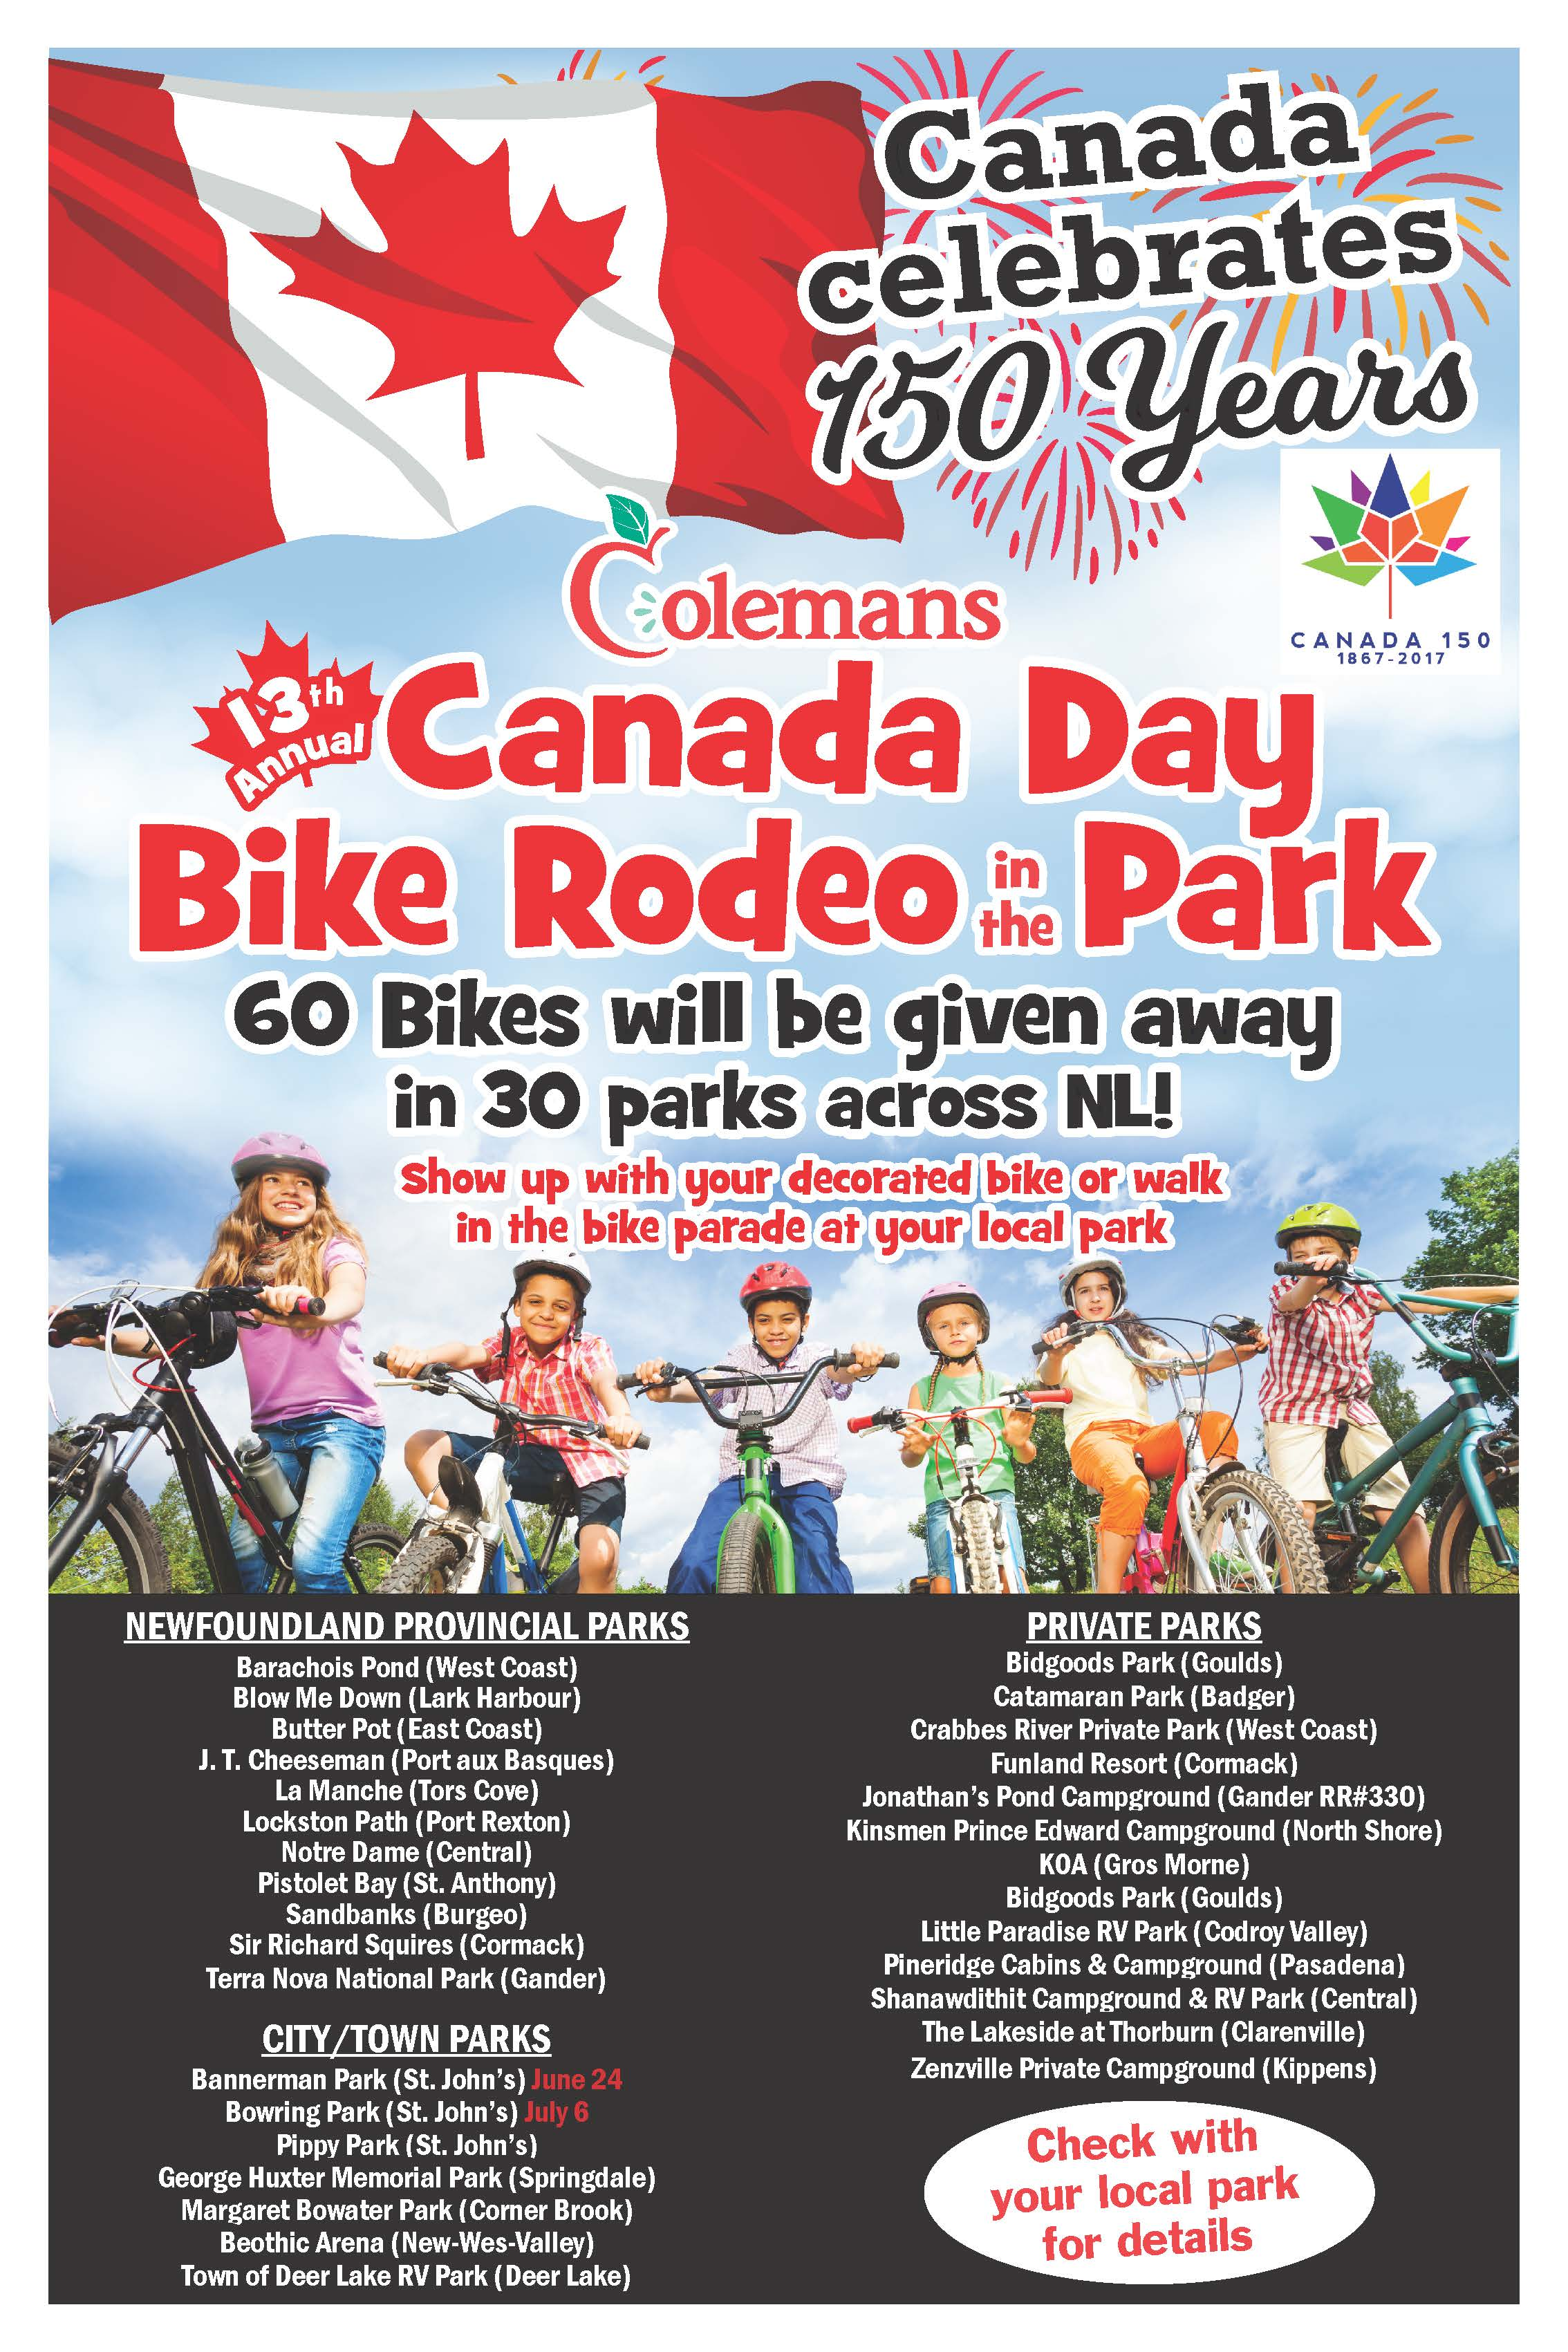 Colemans and Coca-Cola celebrate Canada Day with 13th Annual Bike Rodeo